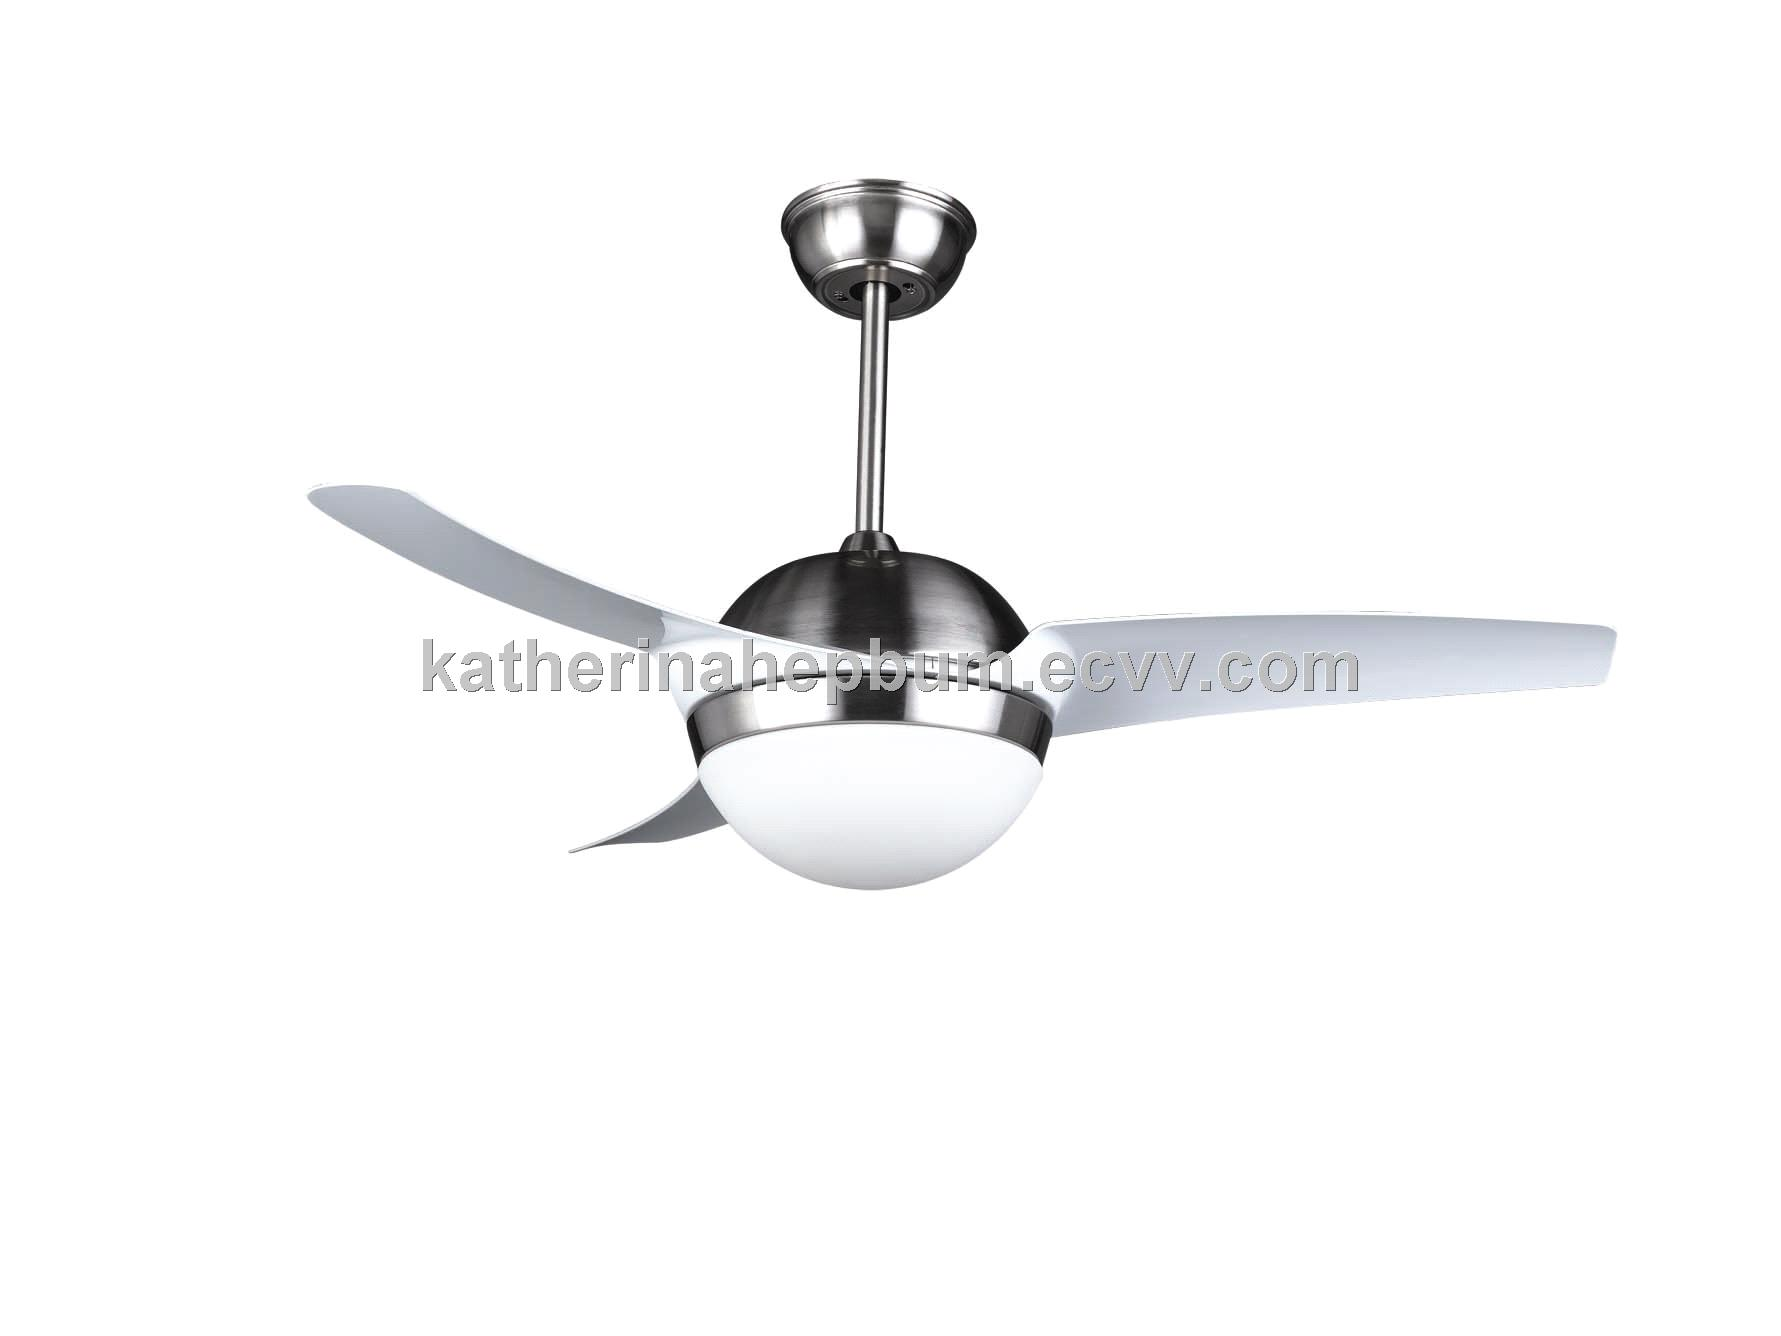 52 Inch Modern Ceiling Fan With Led Light Purchasing